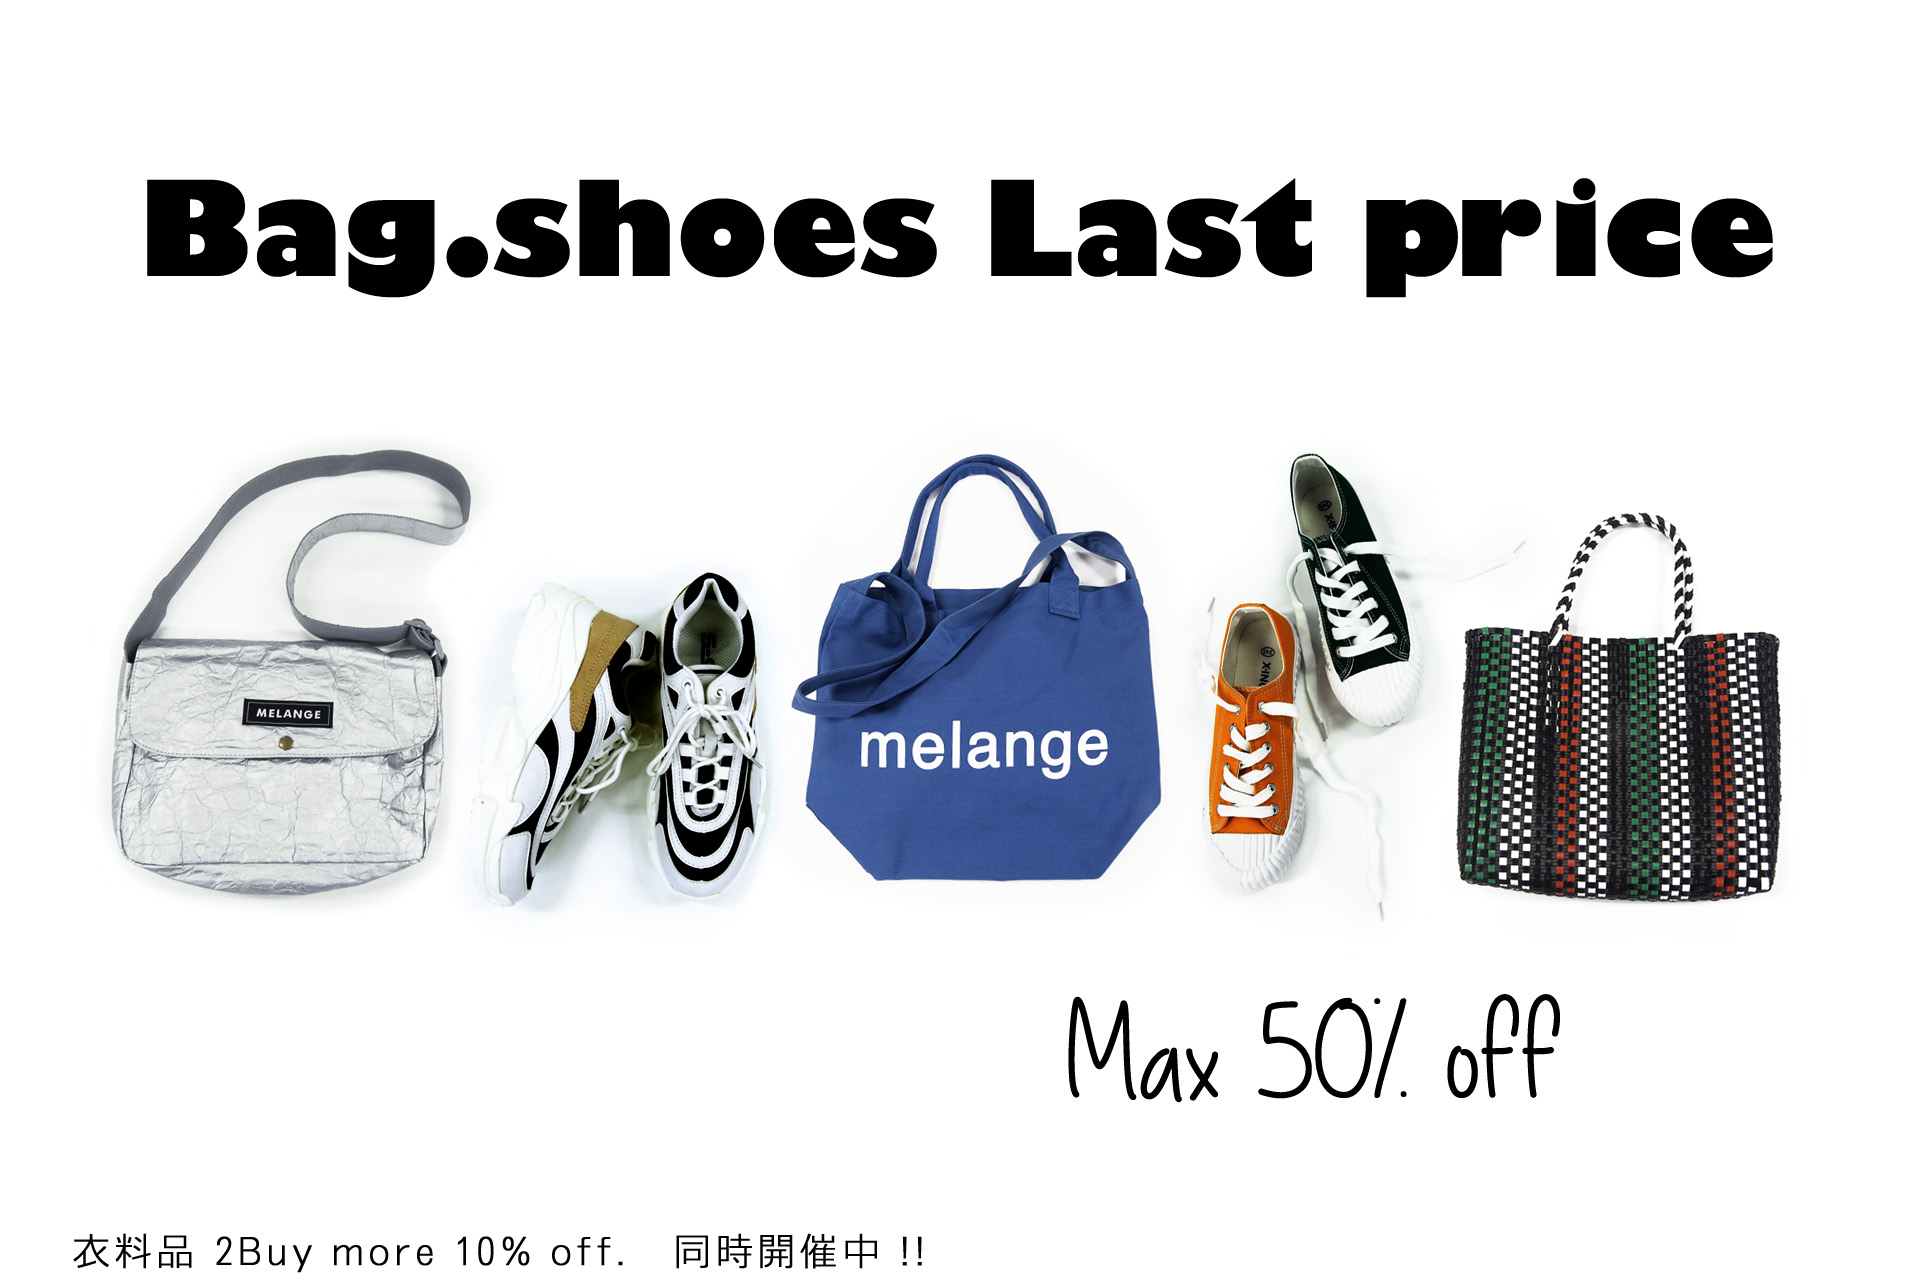 bag.shoes last price